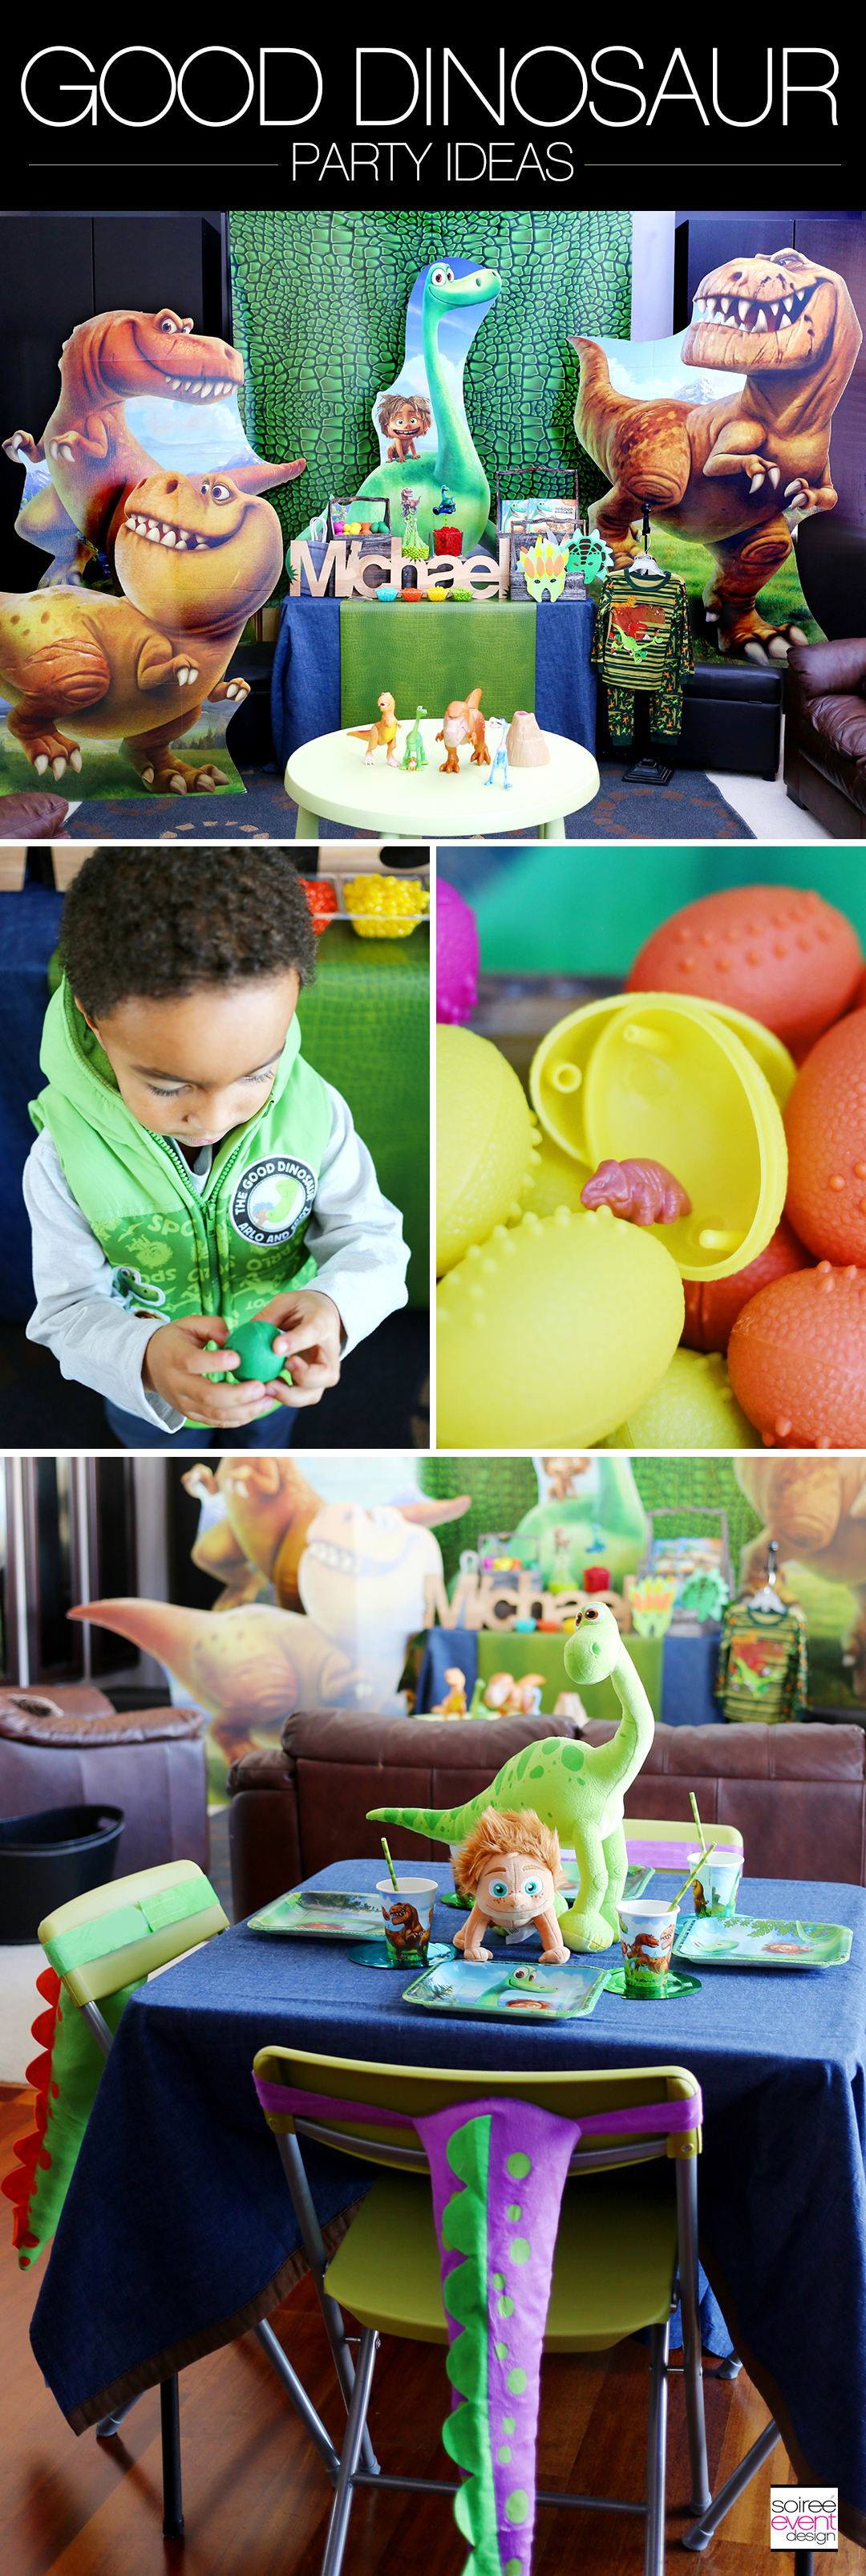 Disney The Good Dinosaur party ideas